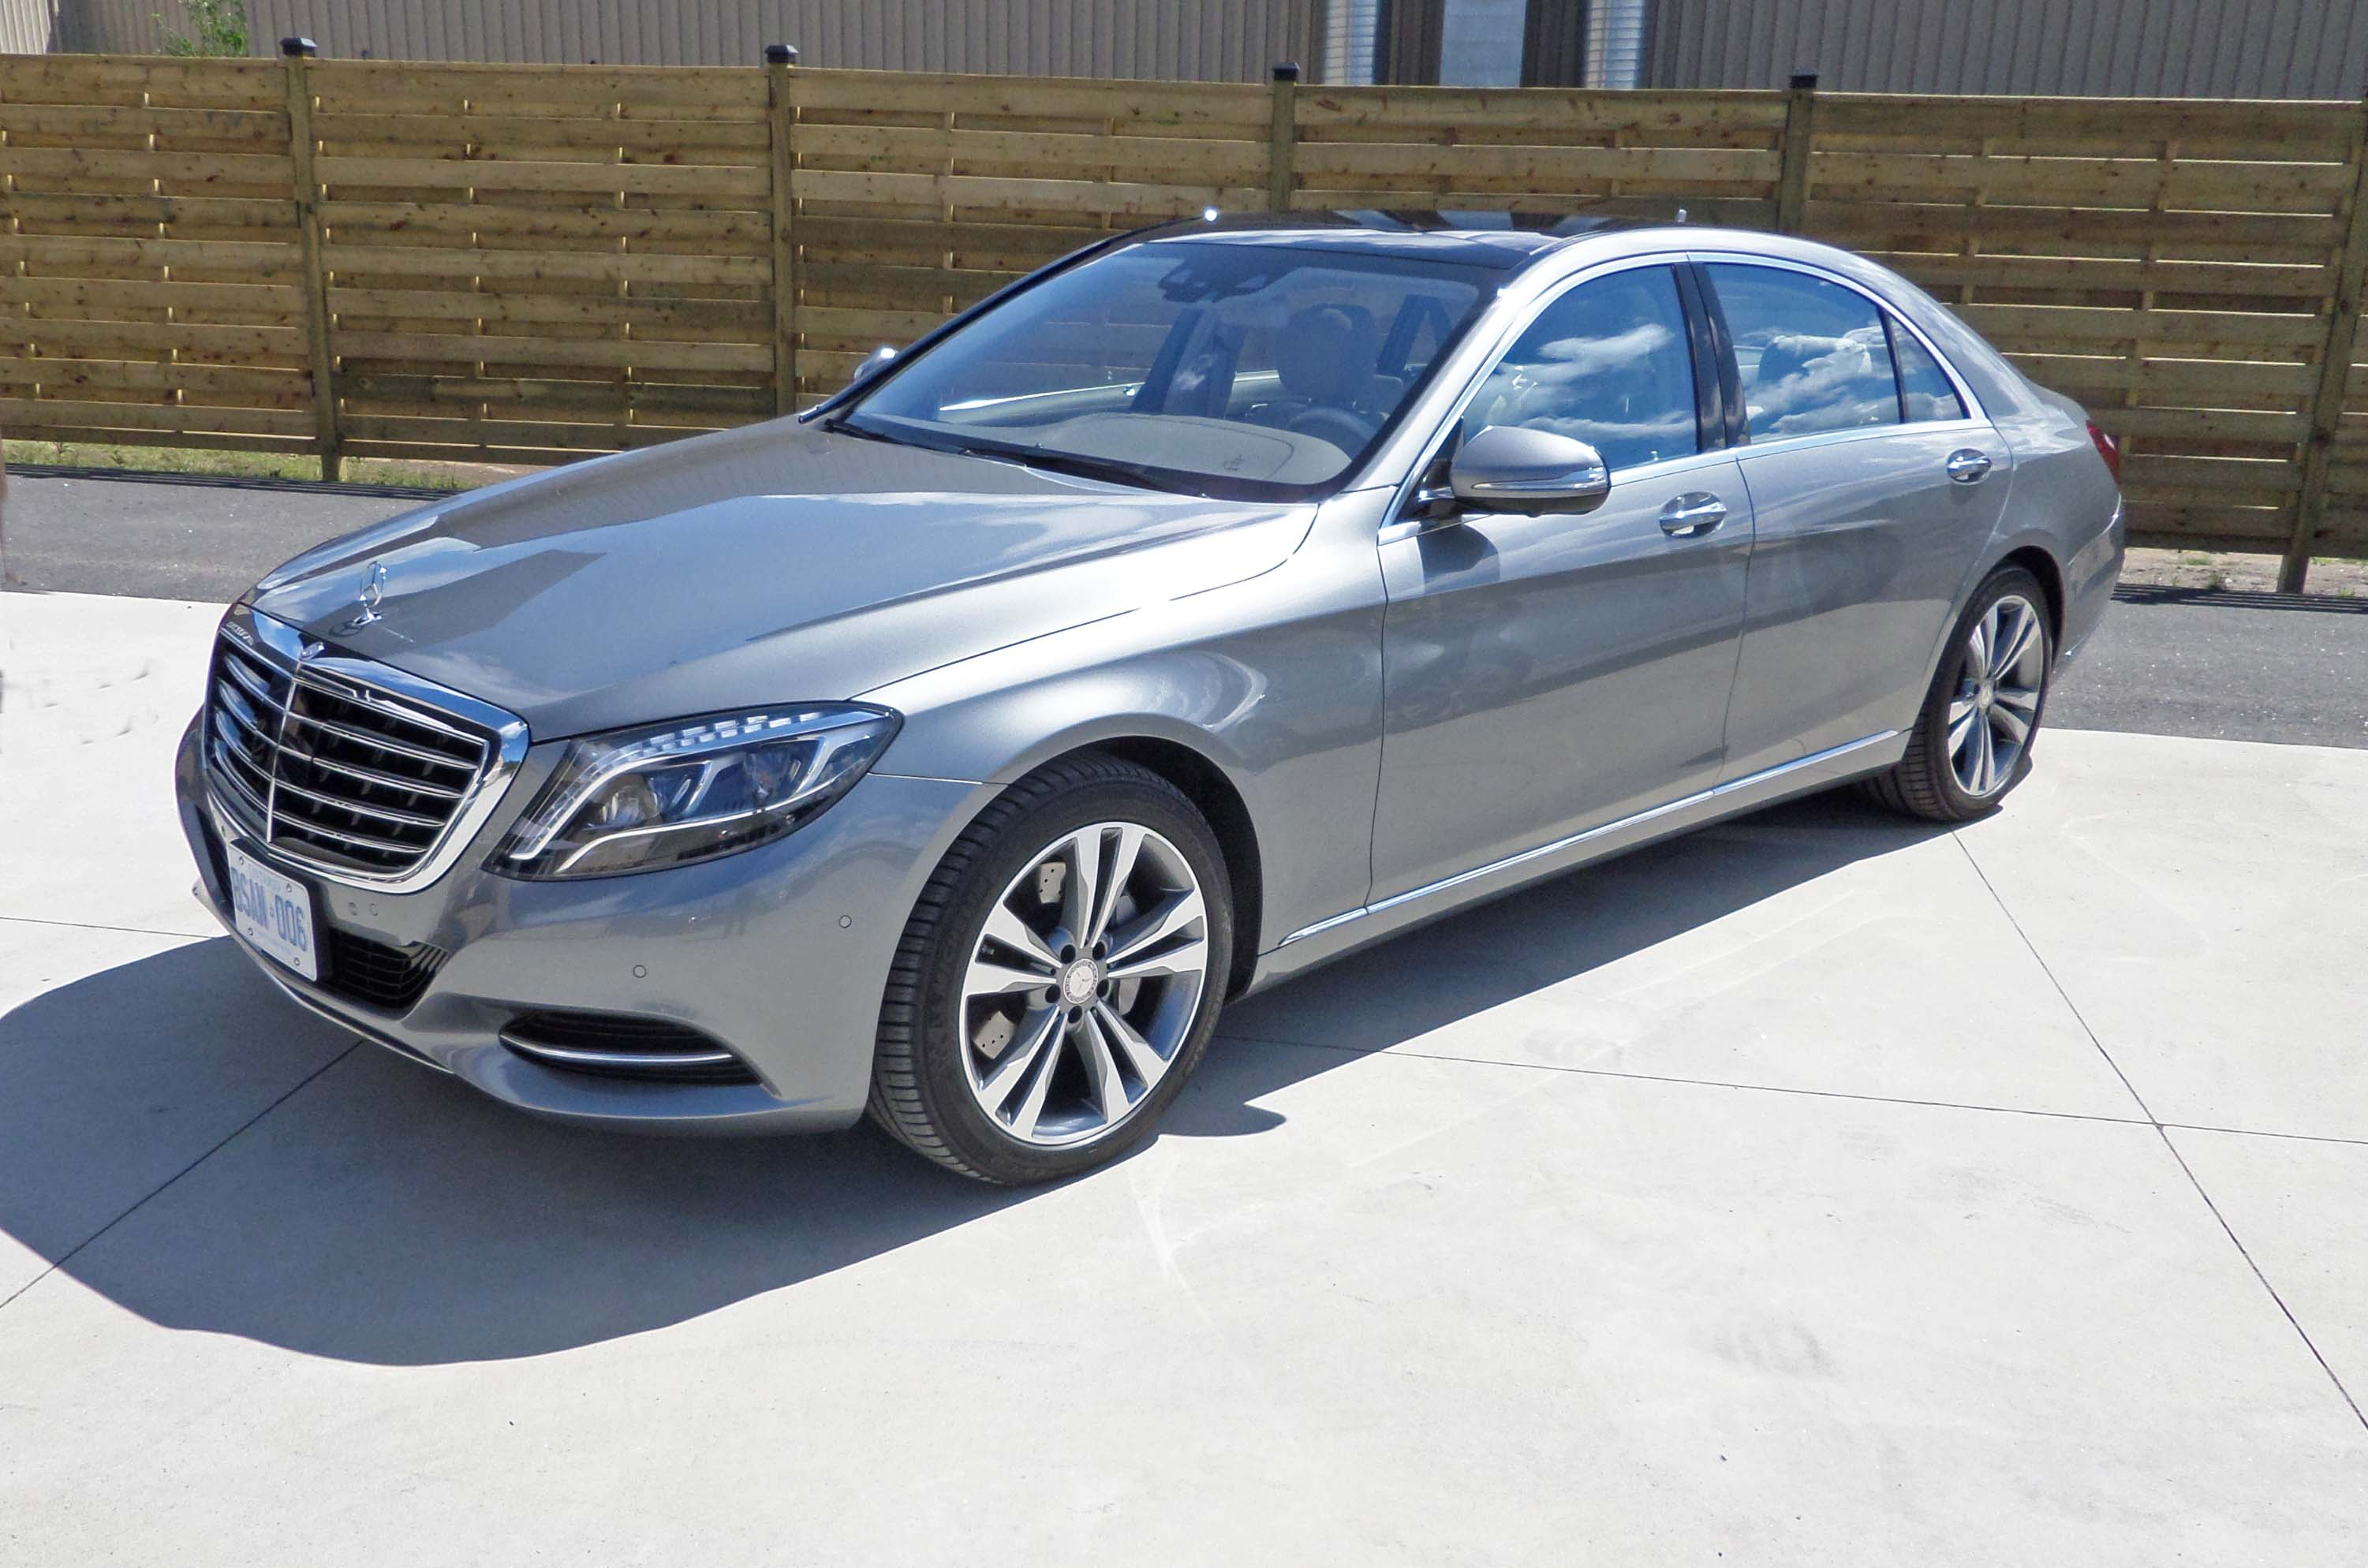 2014 mercedes benz s class test drive our auto expert. Black Bedroom Furniture Sets. Home Design Ideas